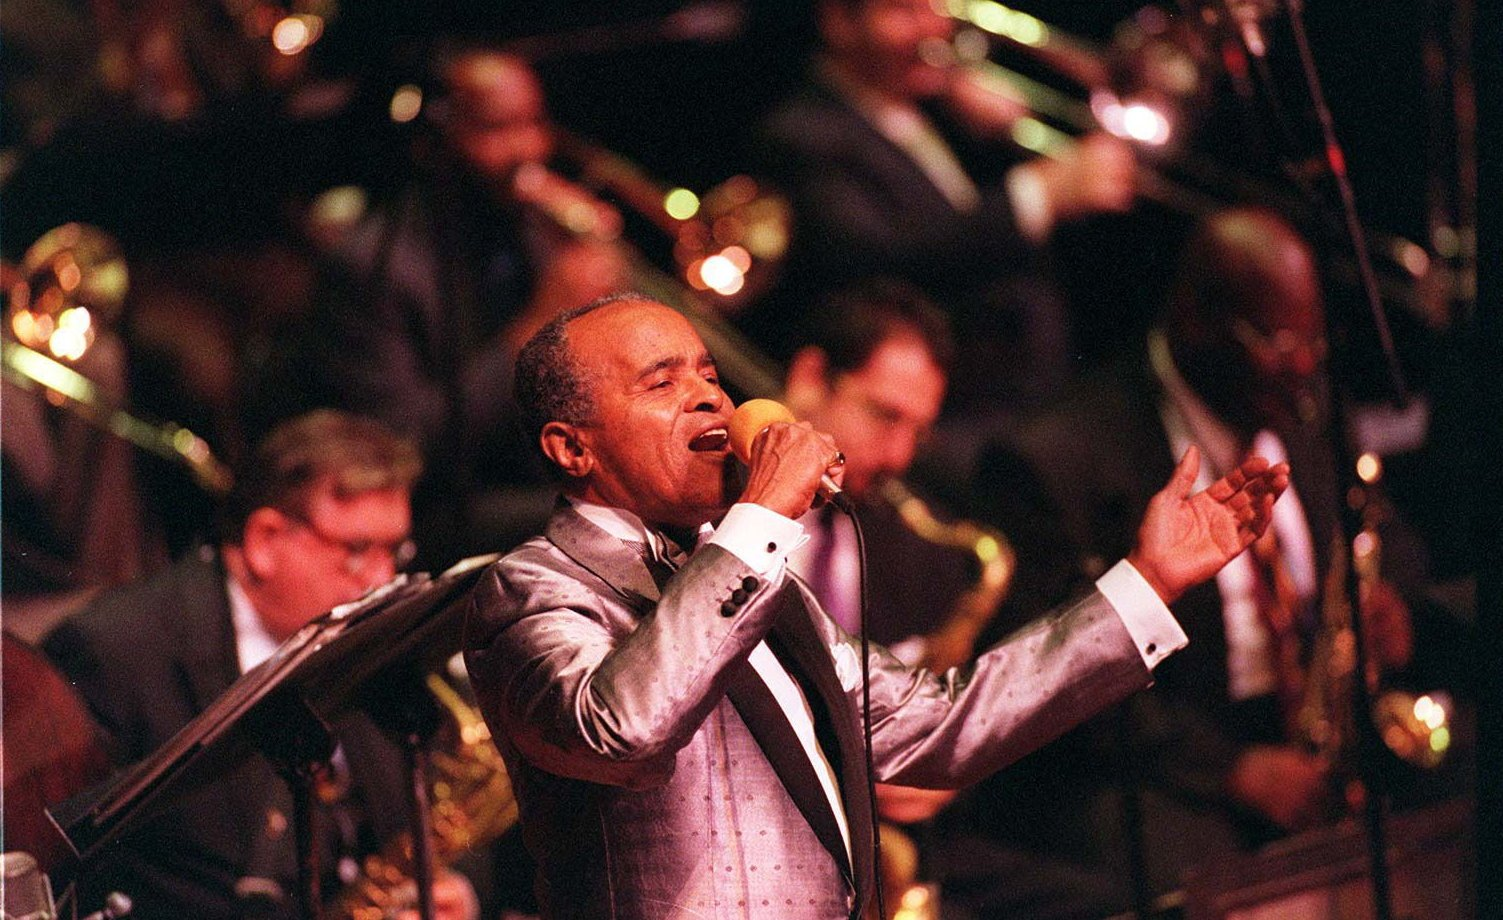 Jon Hendricks (photo: James Estrin/The New York Times)